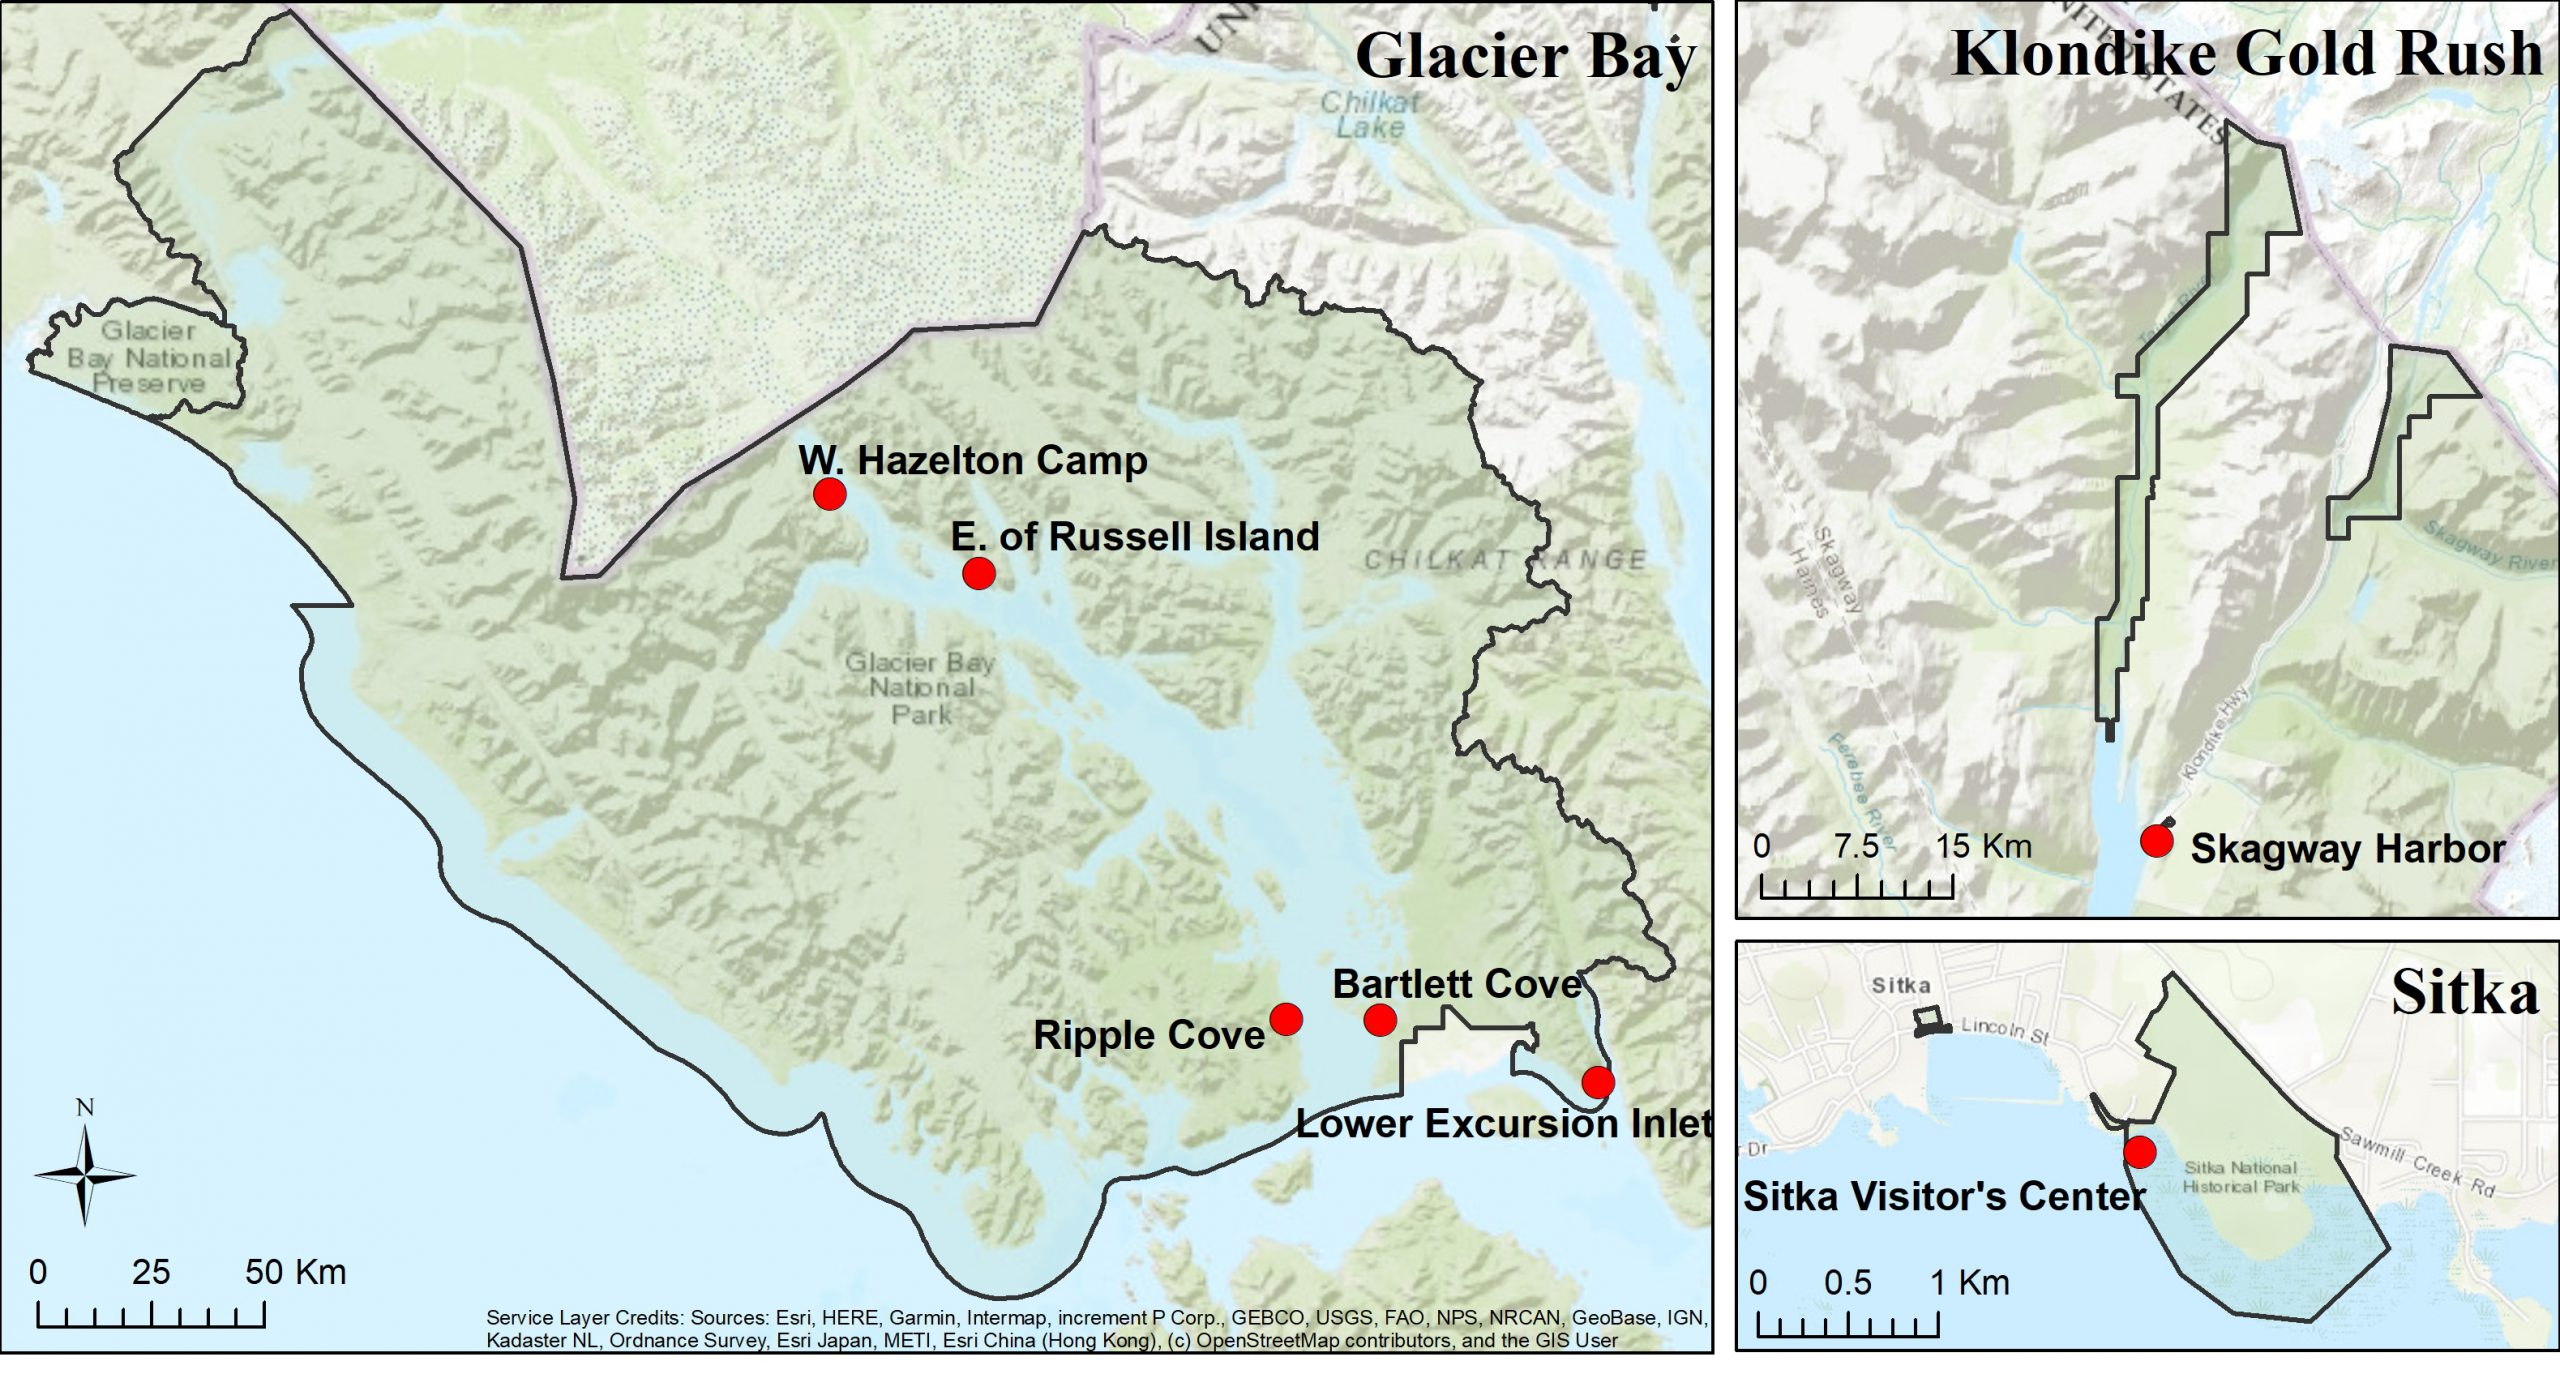 Map of SEAN's six long-term marine contaminants monitoring stations in Glacier Bay National Park and Preserve, Klondike Gold Rush National Historical Park, Sitka National Historical Park, and one site in Skagway Harbor (sampled in partnership with the Municipality of Skagway). Red dots represent bay mussel tissue analysis collection sites.